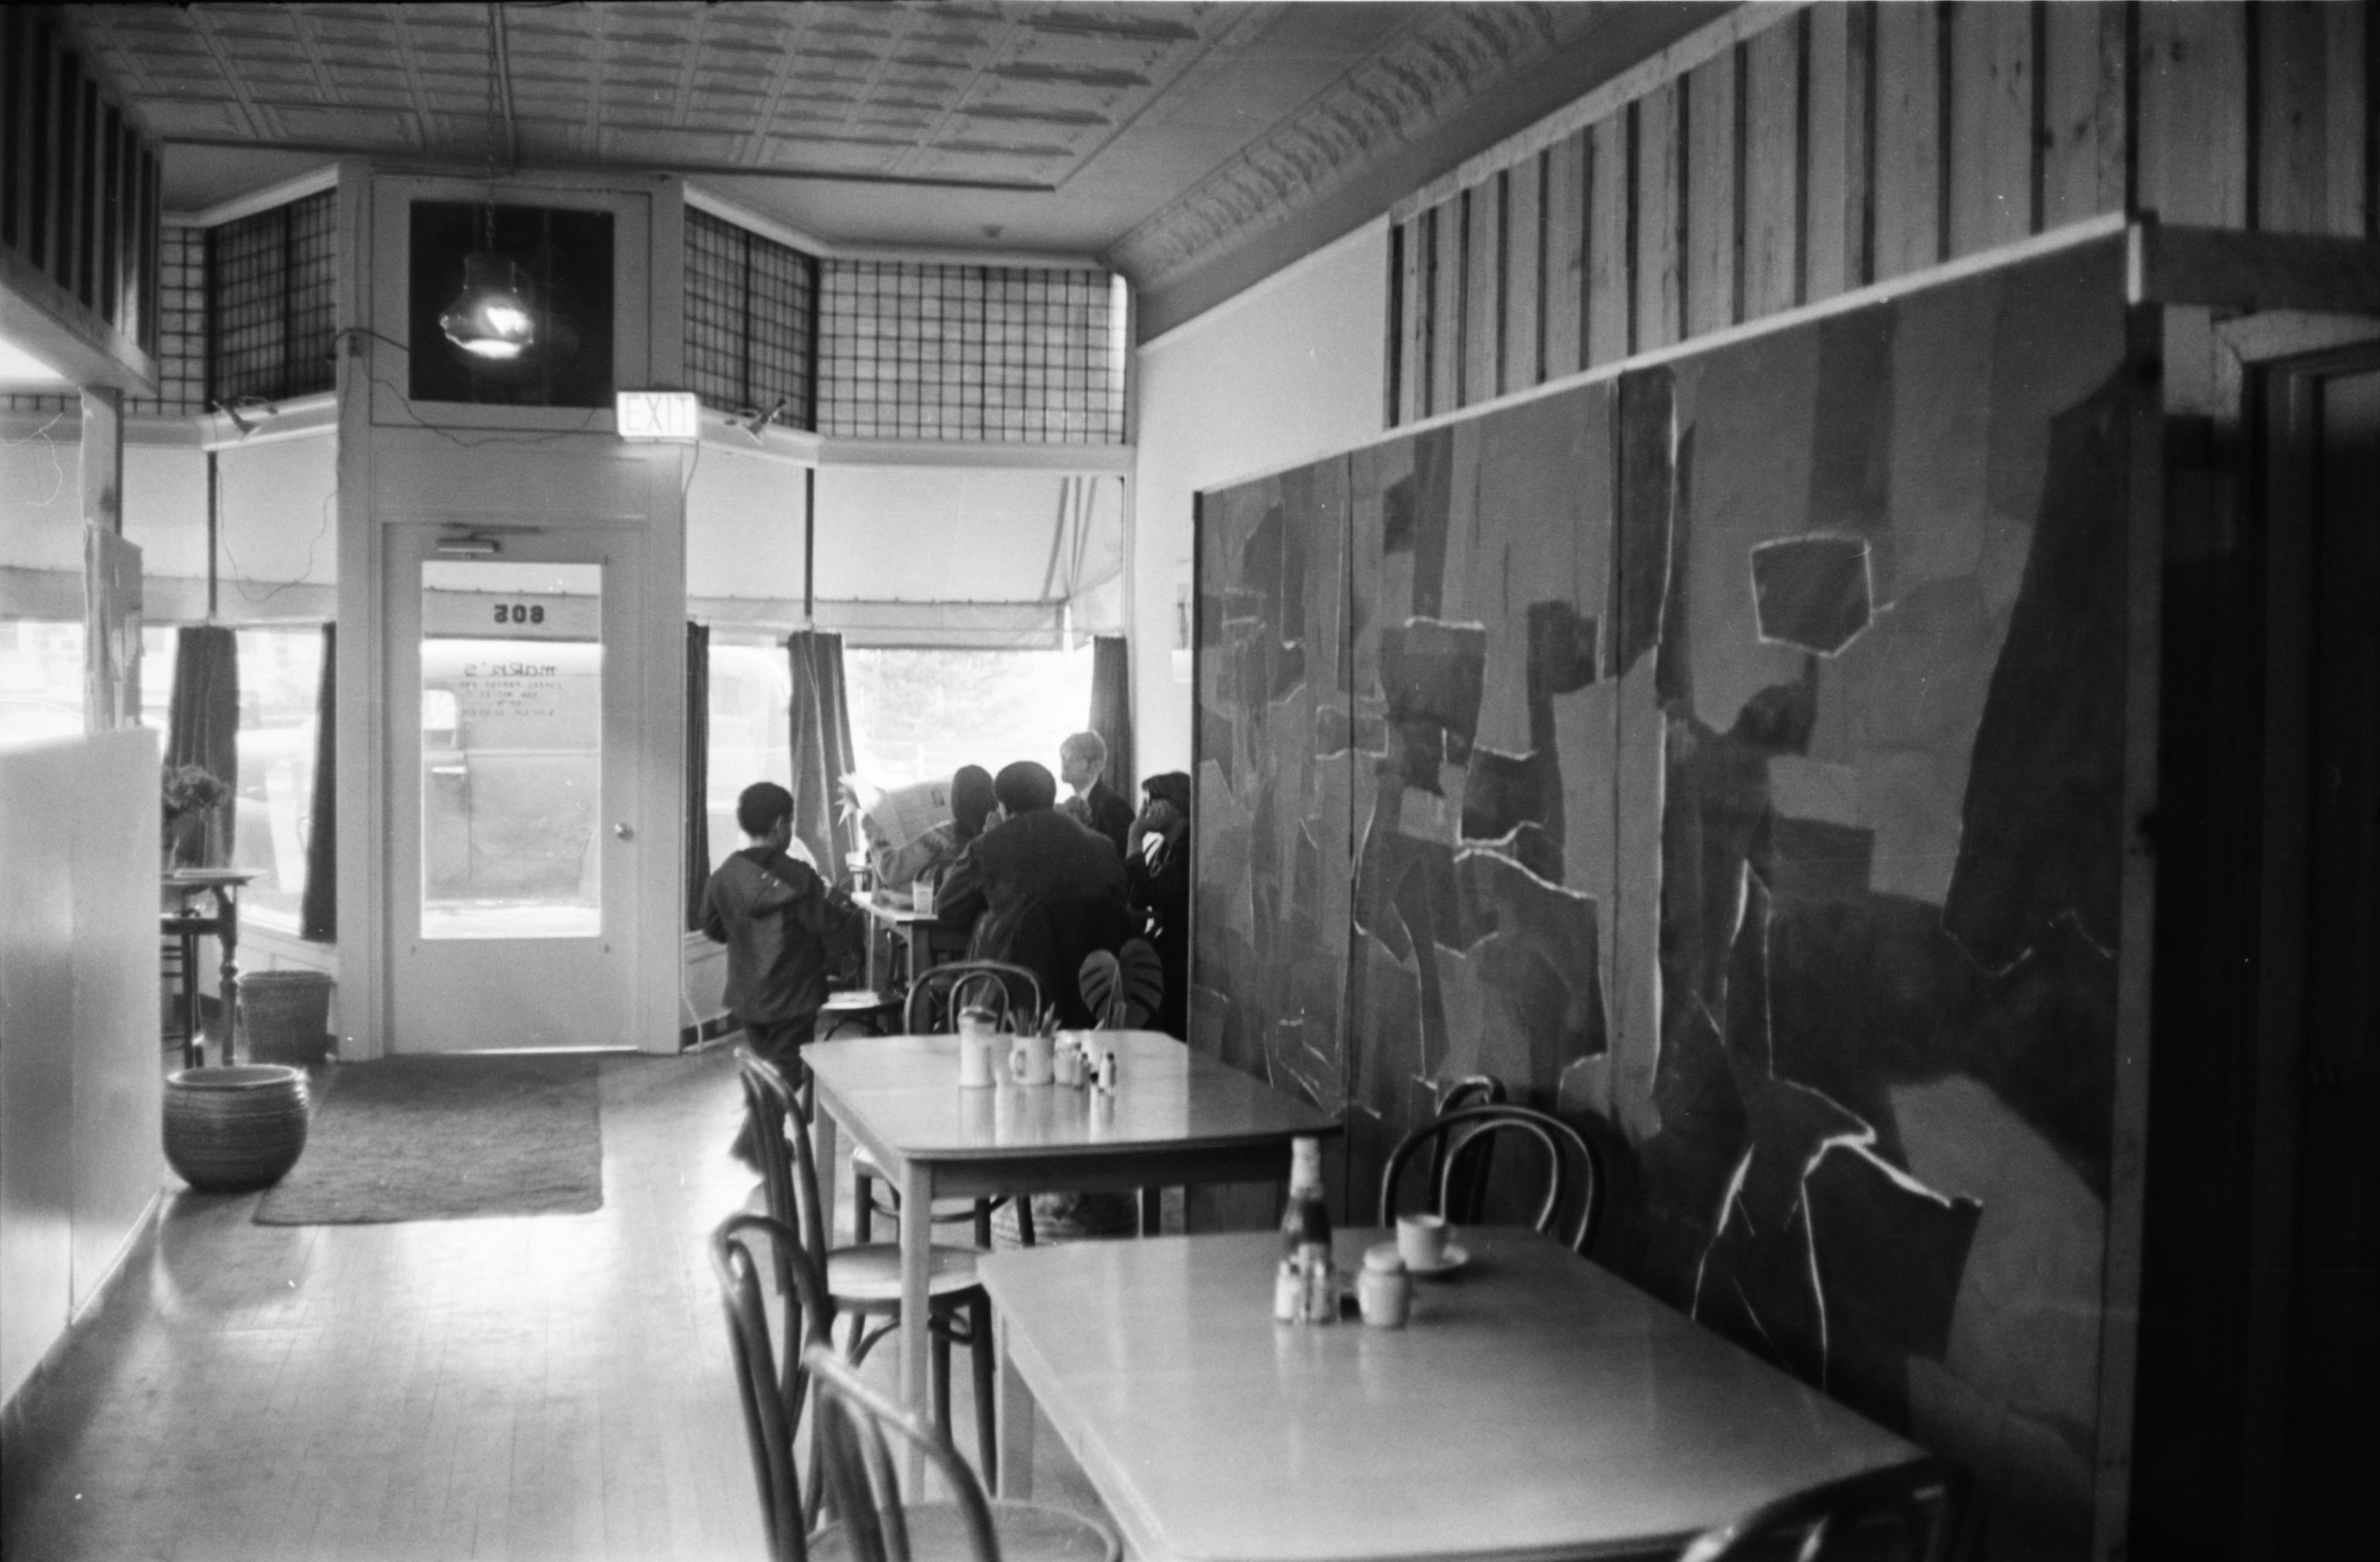 Mark's Coffee House, Interior, February 1968 image